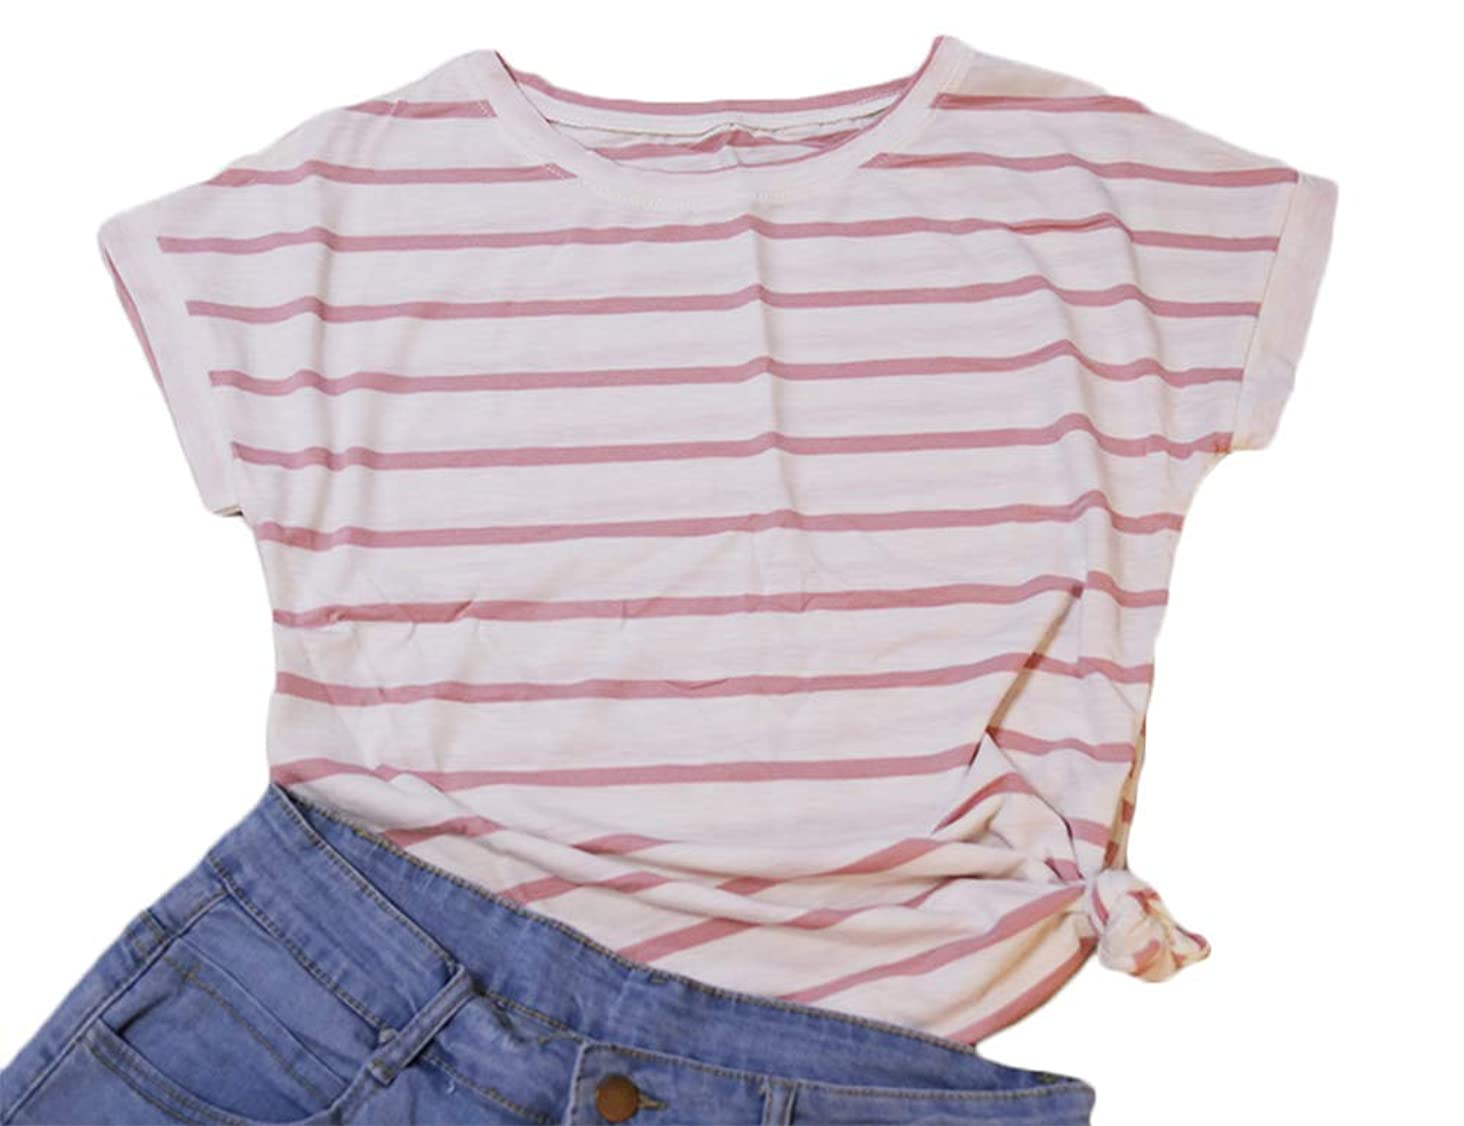 Hioinieiy Women's Summer Casual Short Sleeve Striped T Shirt Petite and Plus Size Tops Crew Neck Cute Tees